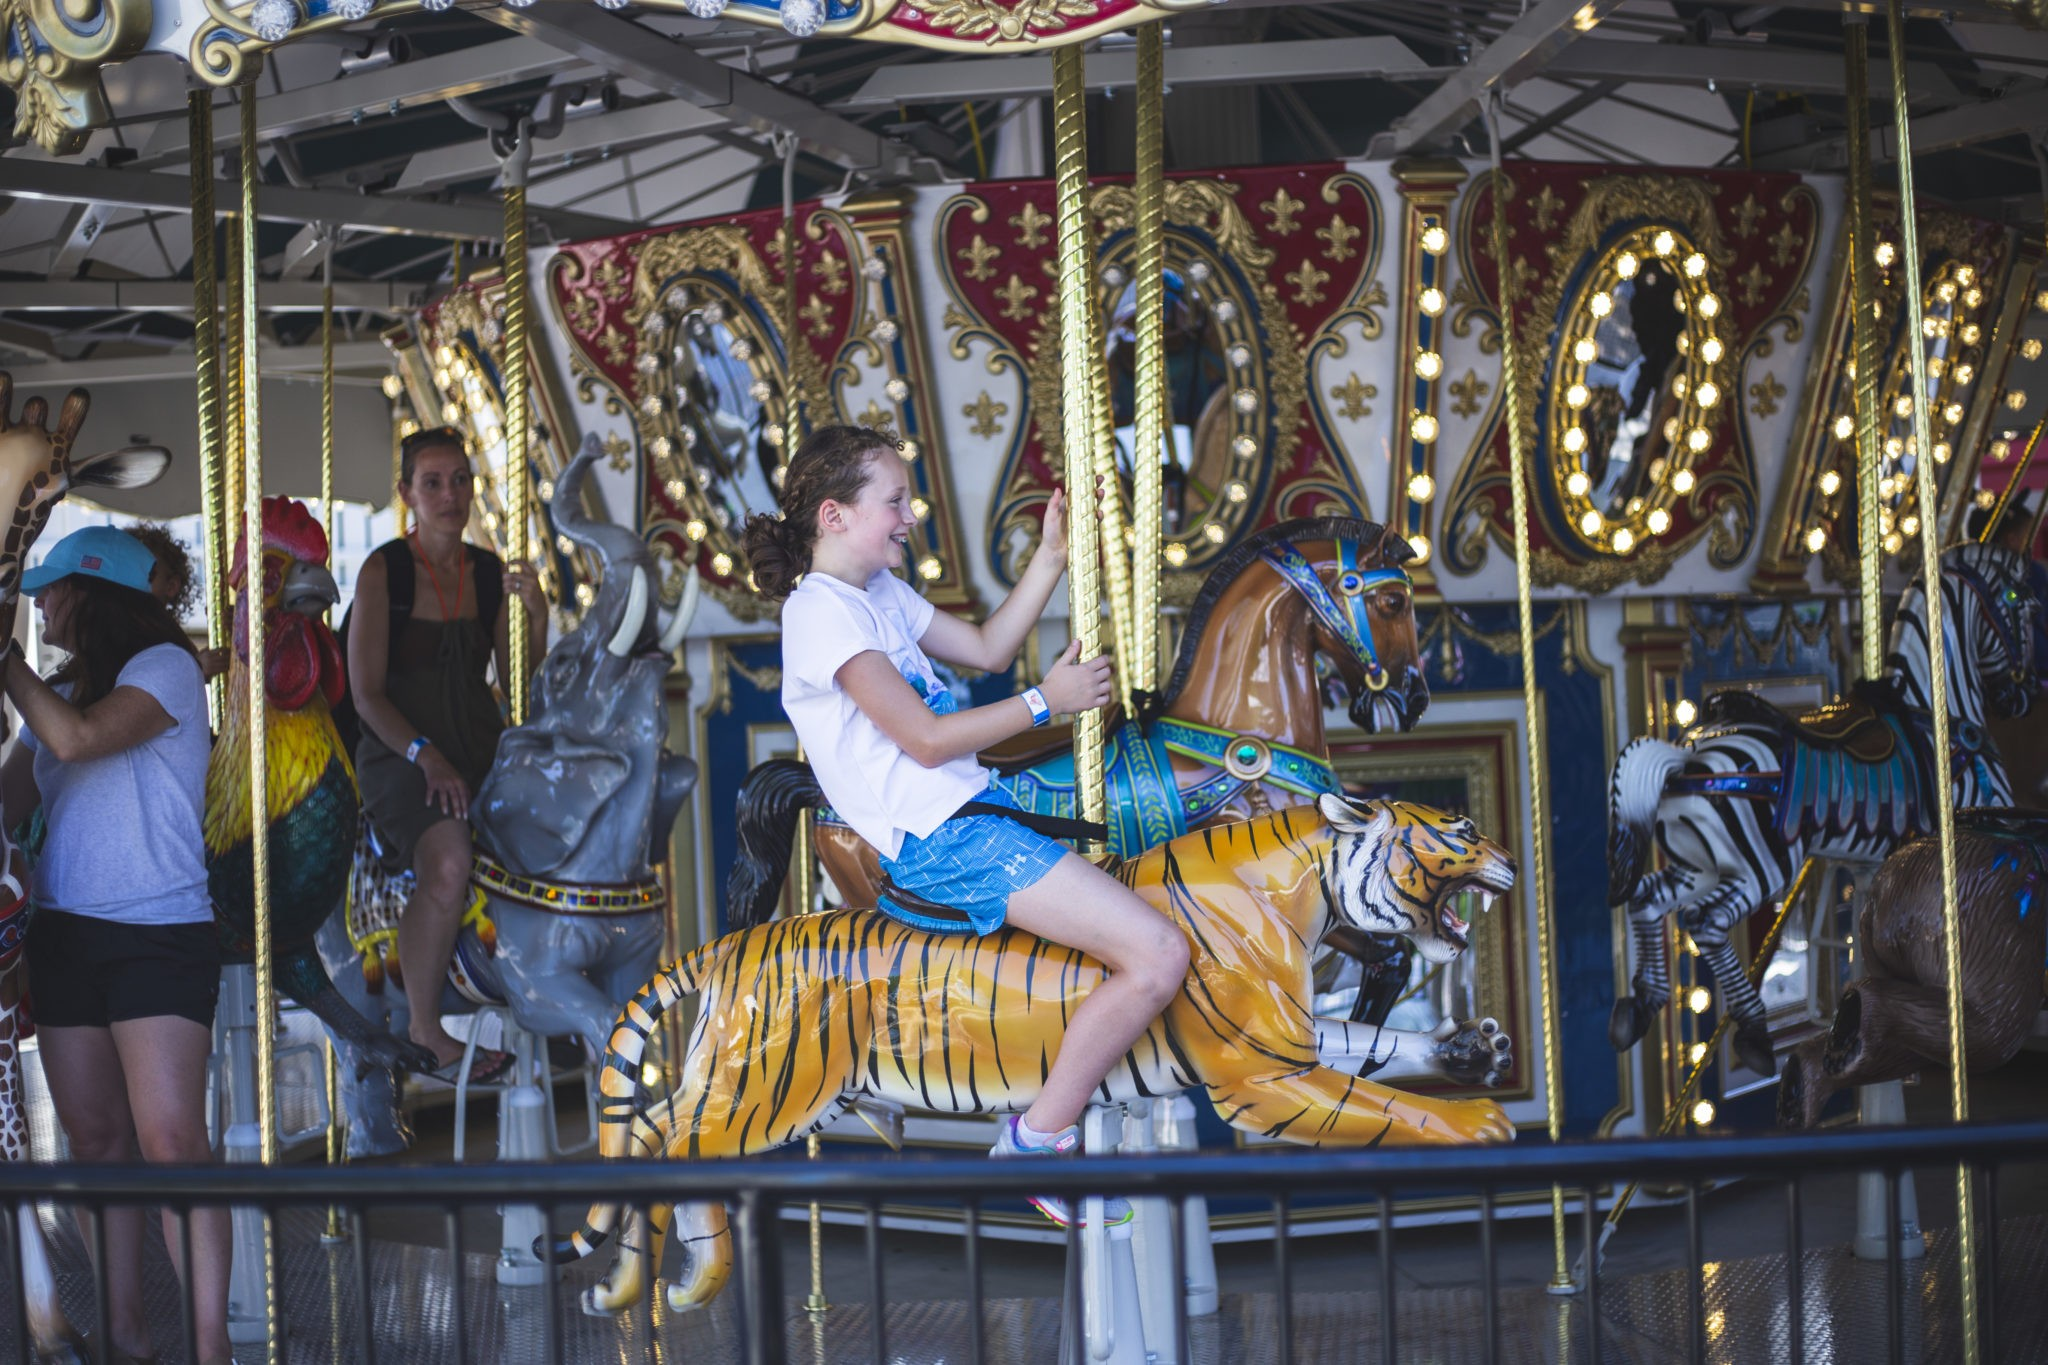 A young girl riding a tiger on the carousel.